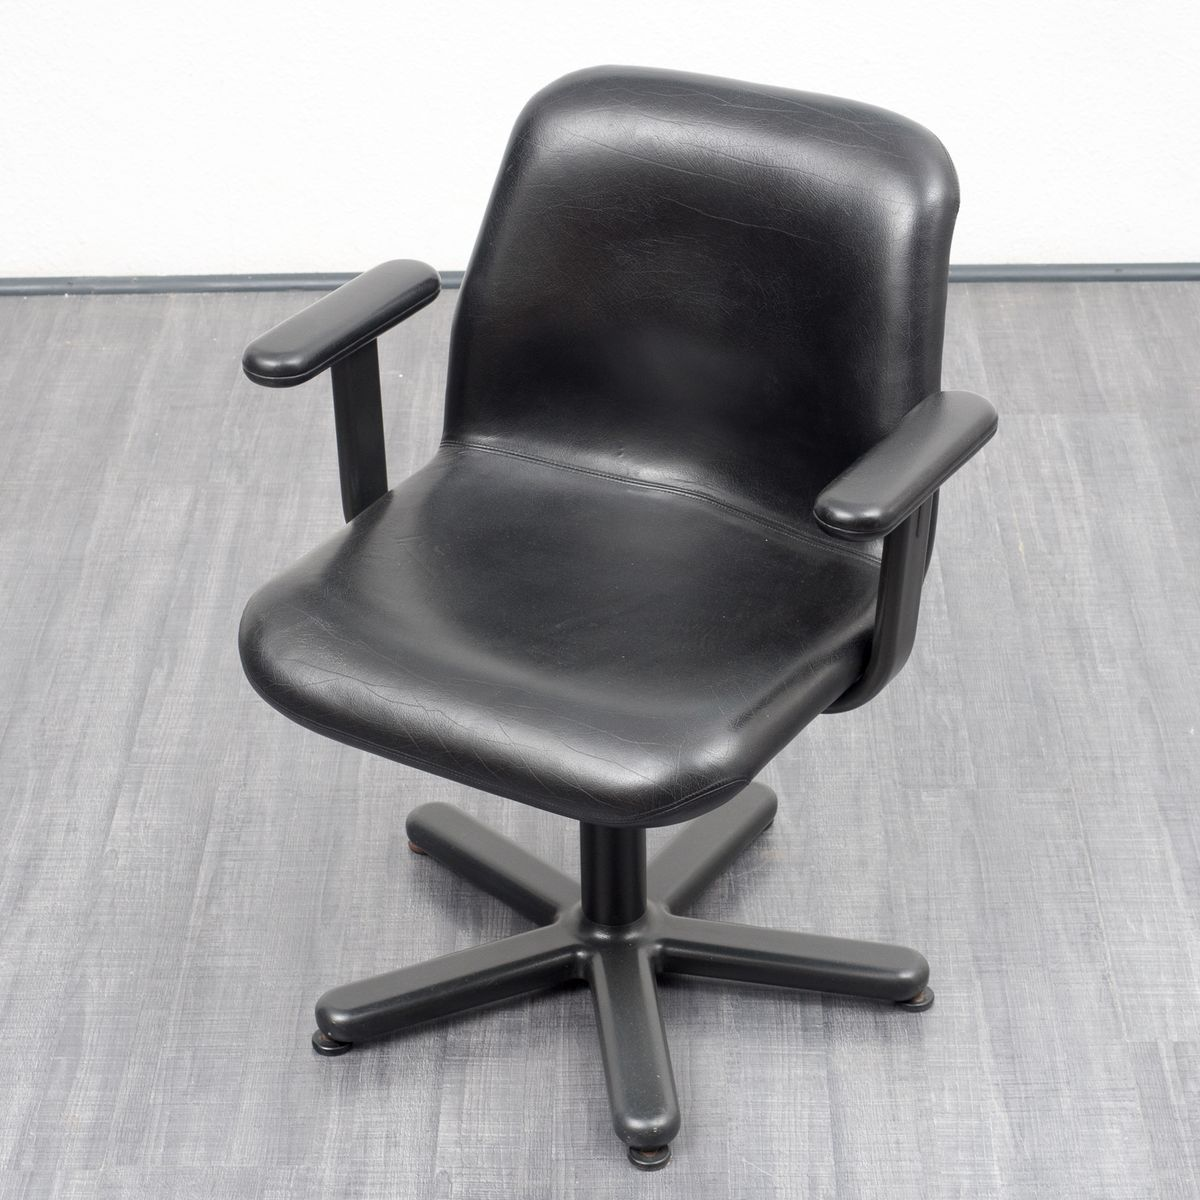 Knoll Office Chair Mid Century - Mid century leather desk chair from knoll international 1950s